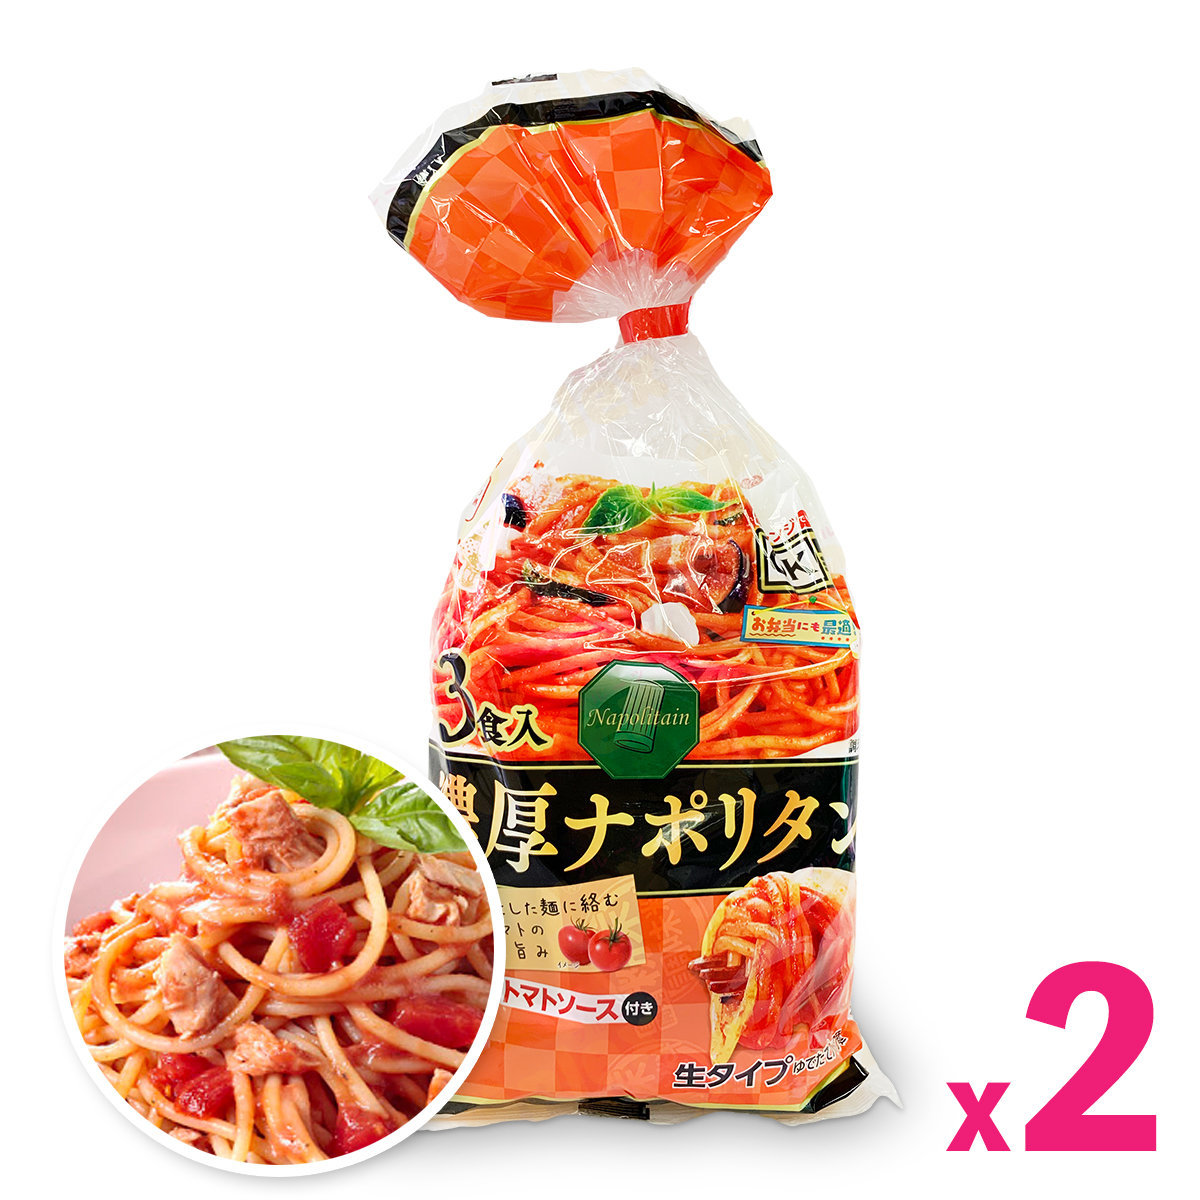 Japan Instant Tomato Spaghetti (3 serves) x 2packs